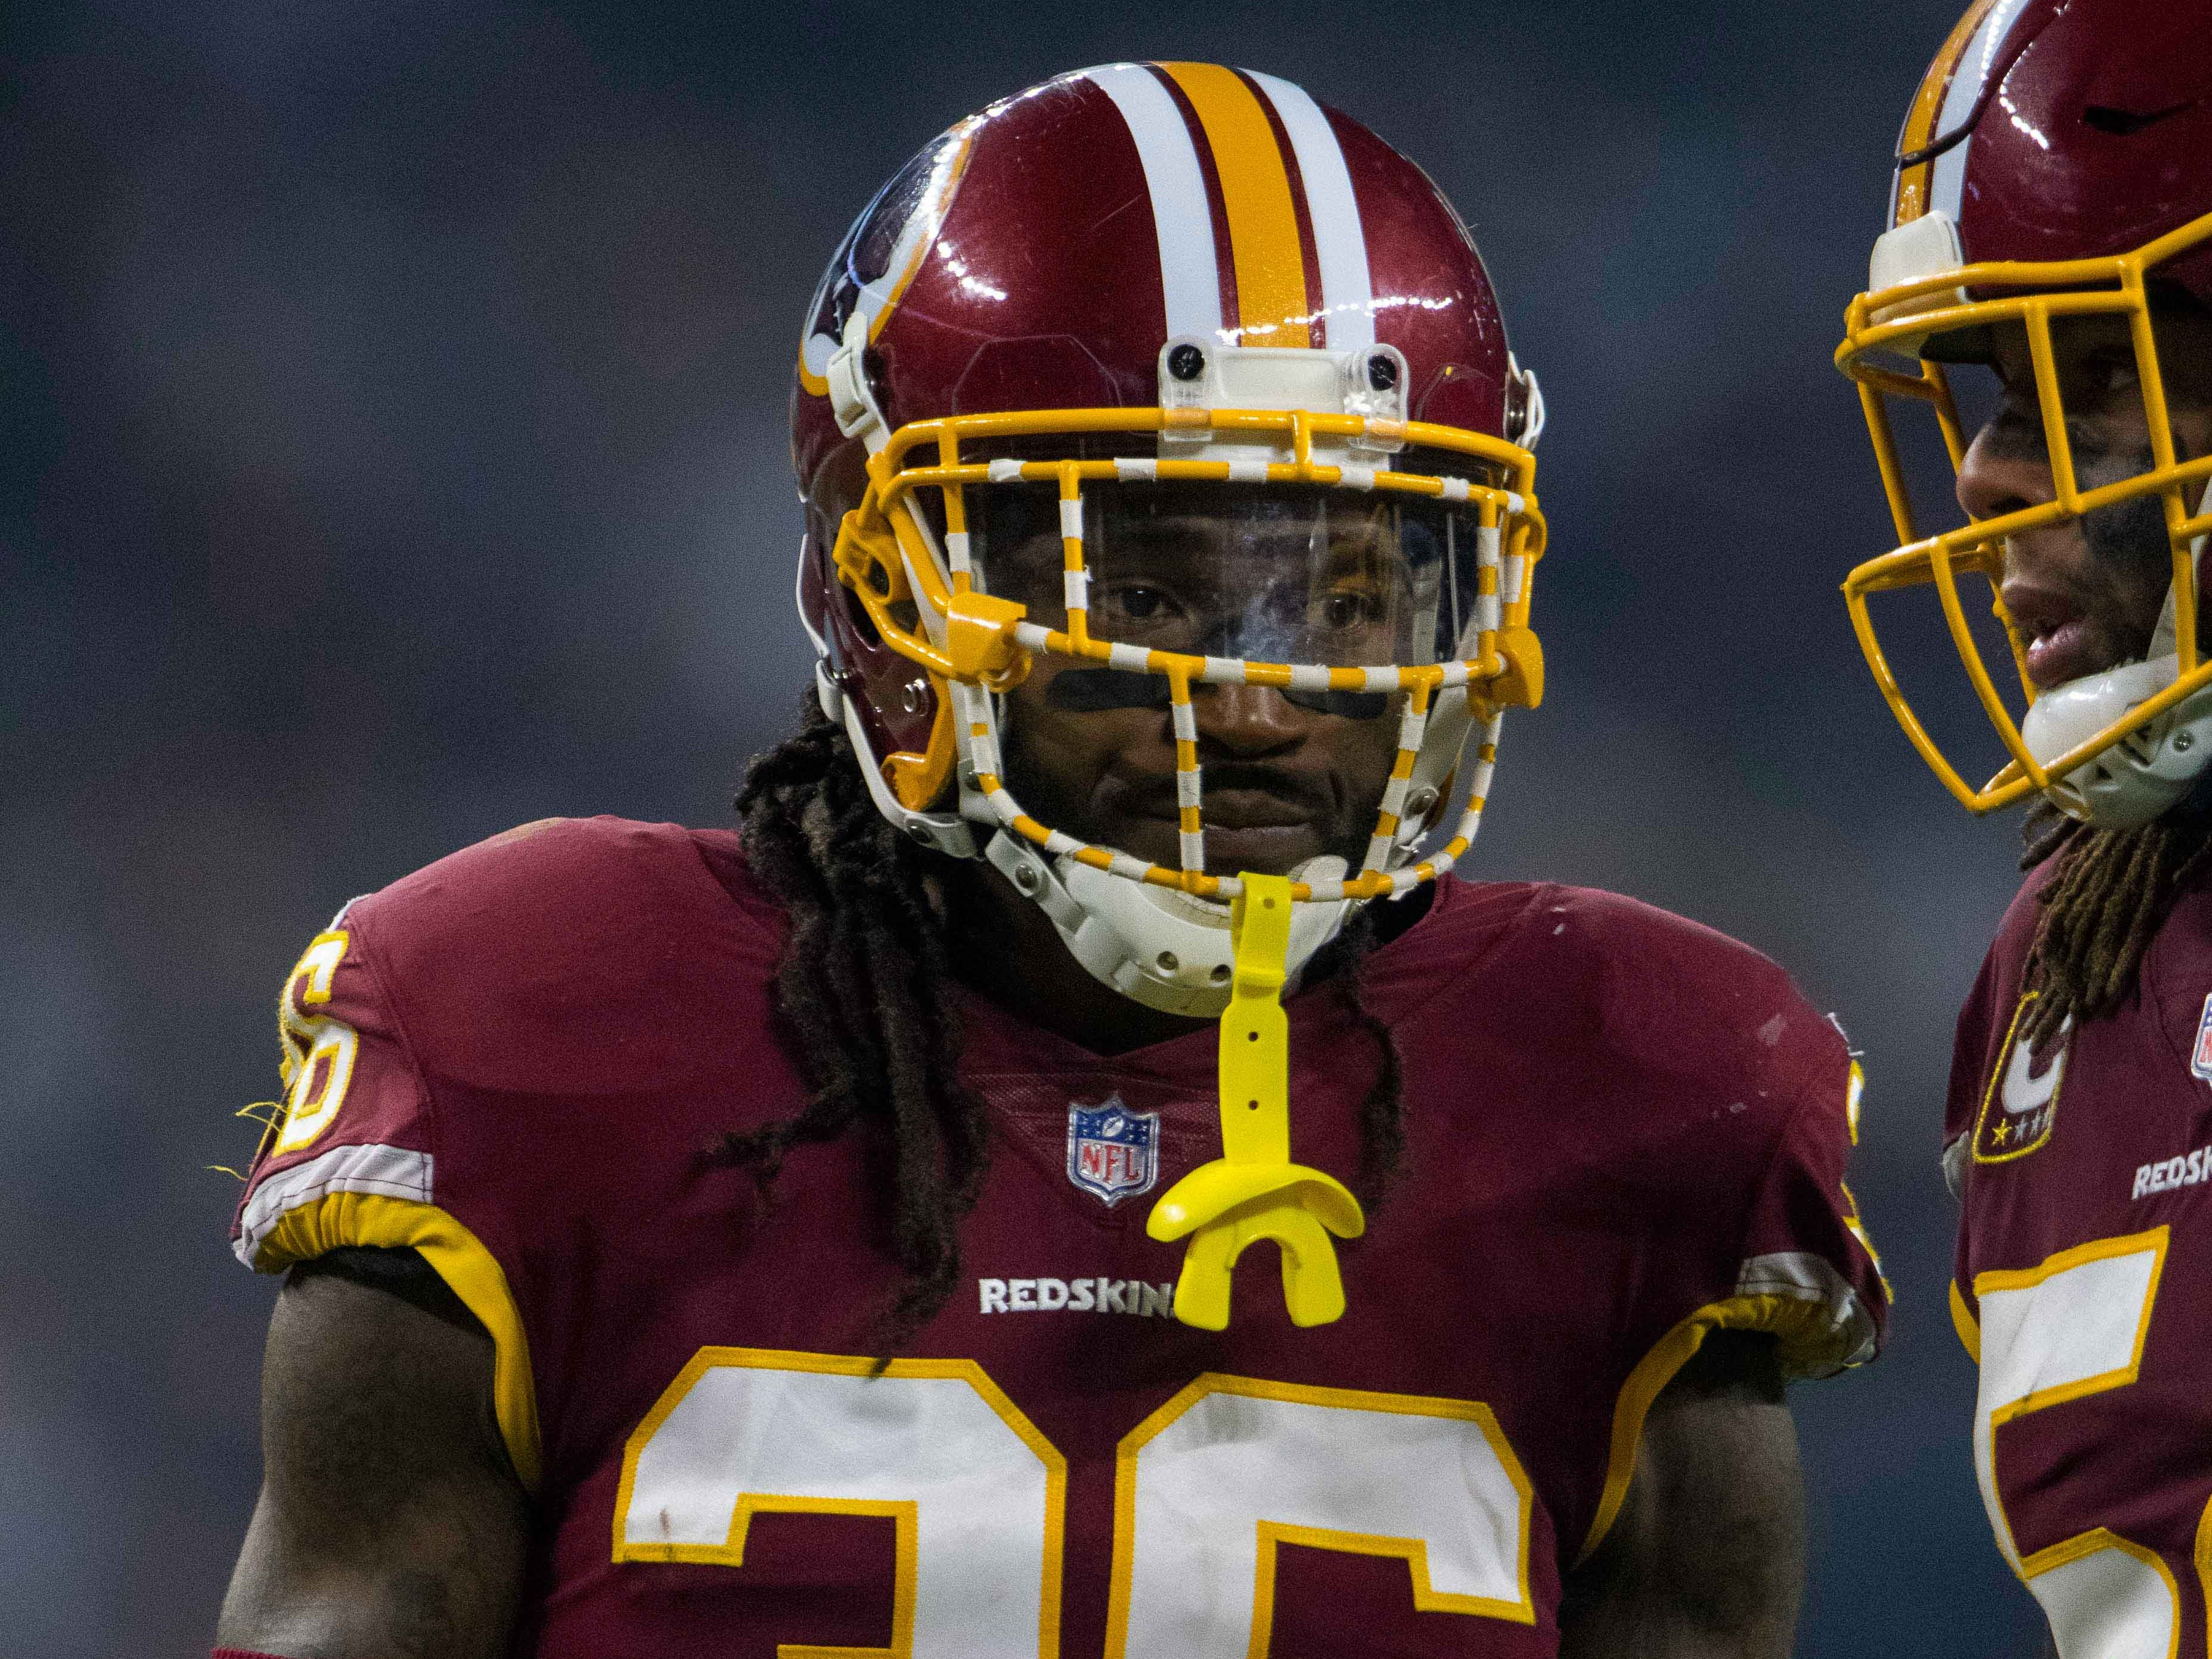 23. Redskins (25): No one tells the truth in Washington, D.J. Swearinger. Unfortunately, you didn't learn this lesson in time to save your roster spot.